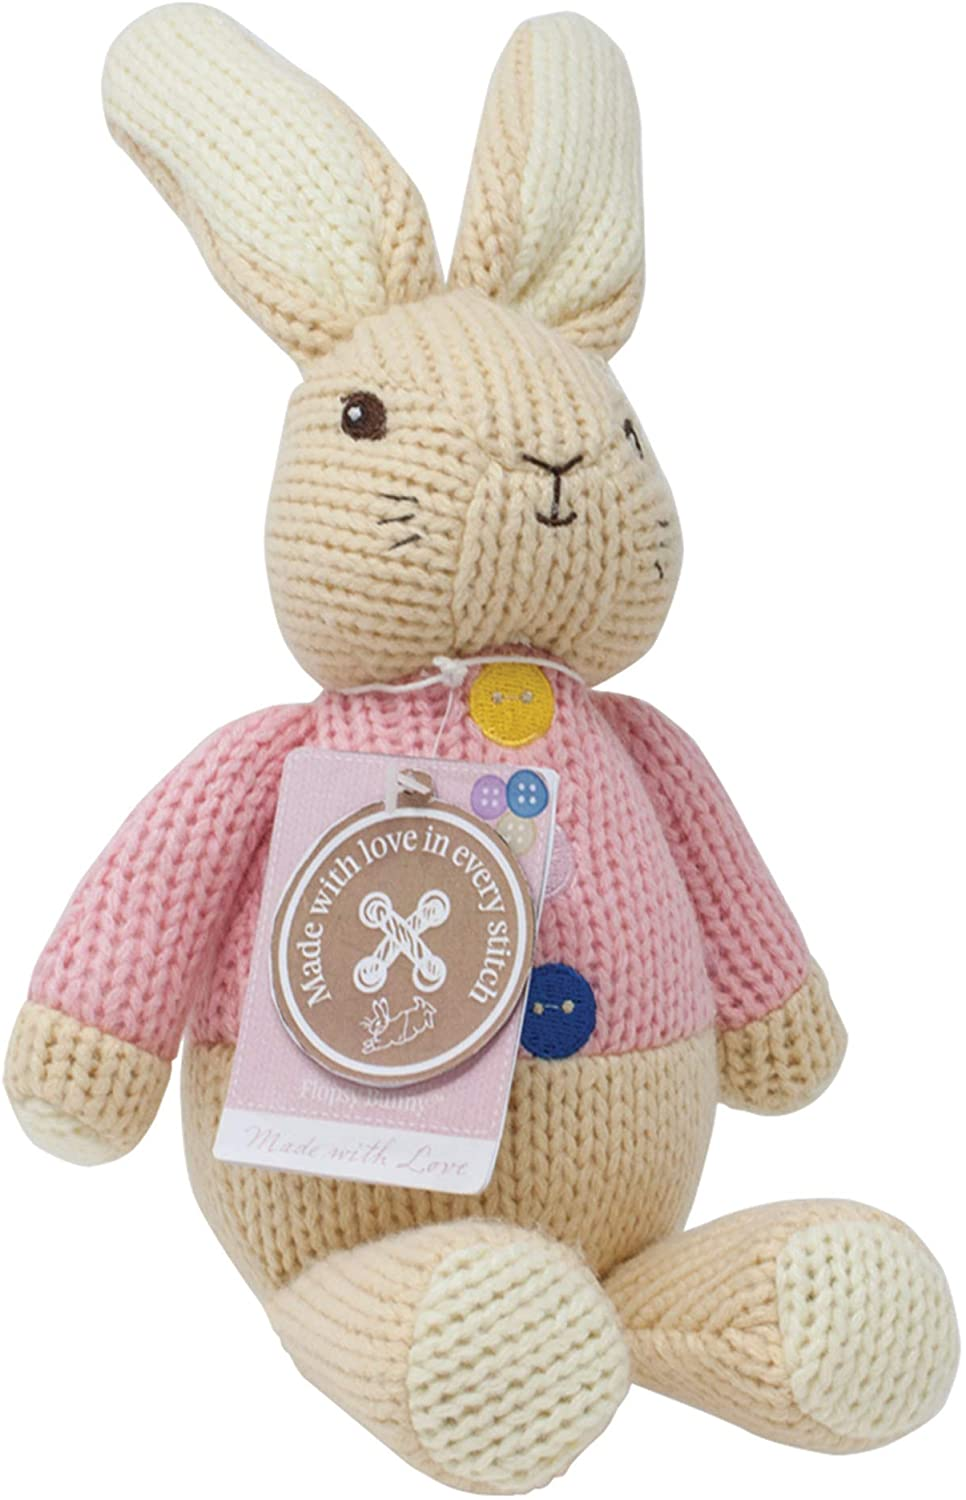 Rainbow Designs Made with Love Peter Rabbit and Flopsy Deluxe Hand Knitted Set